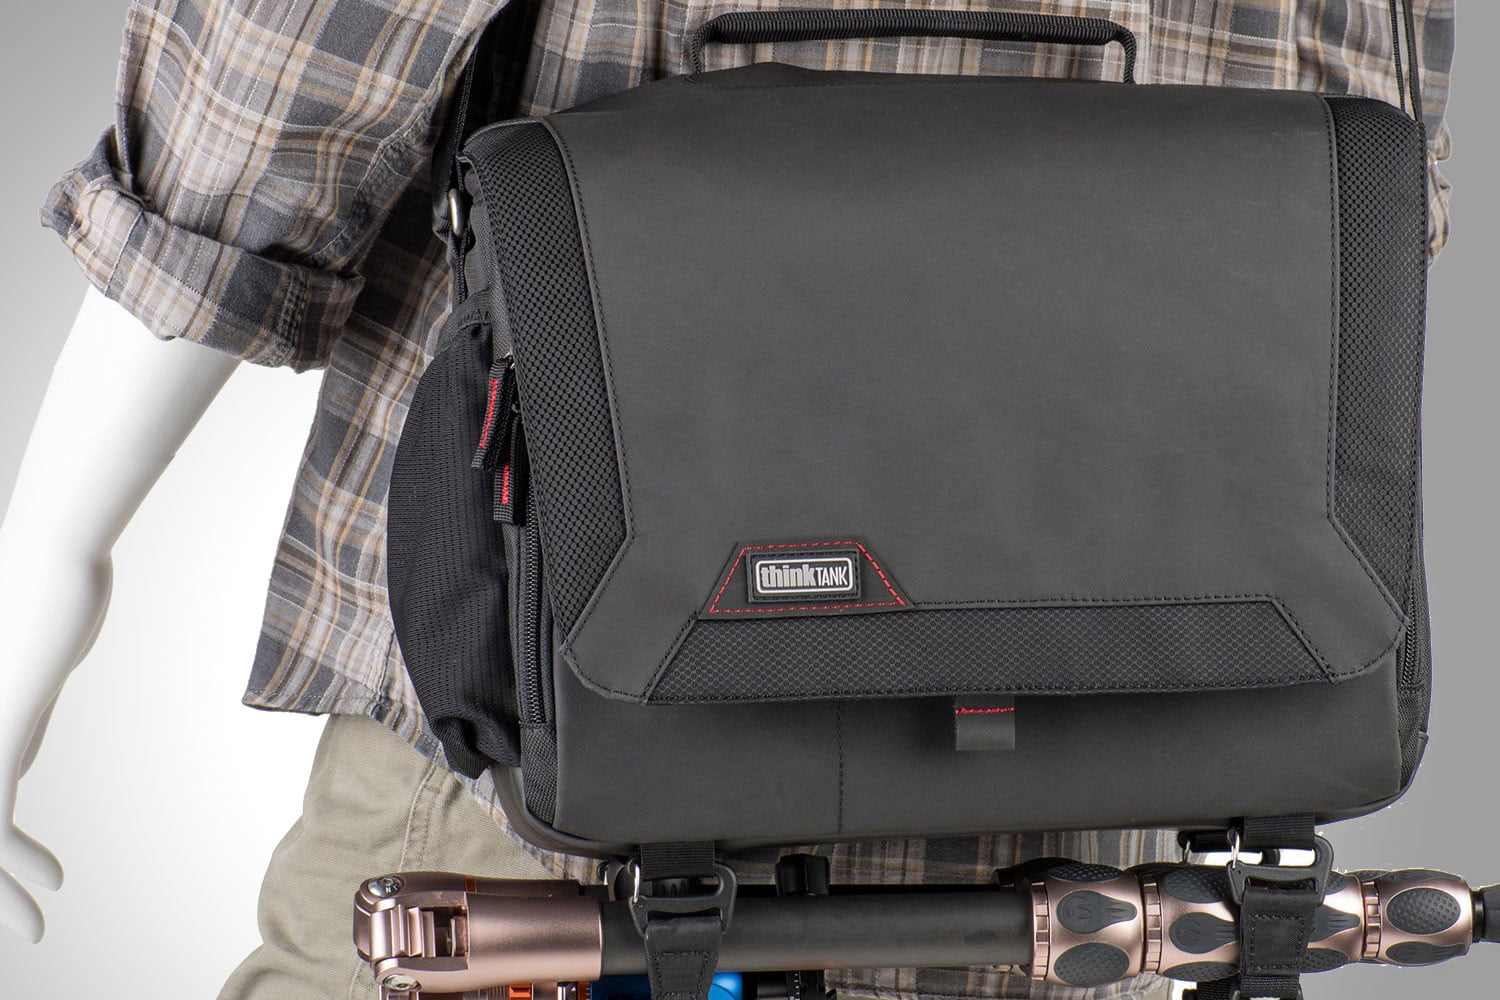 Think Tank Spectral camera bags